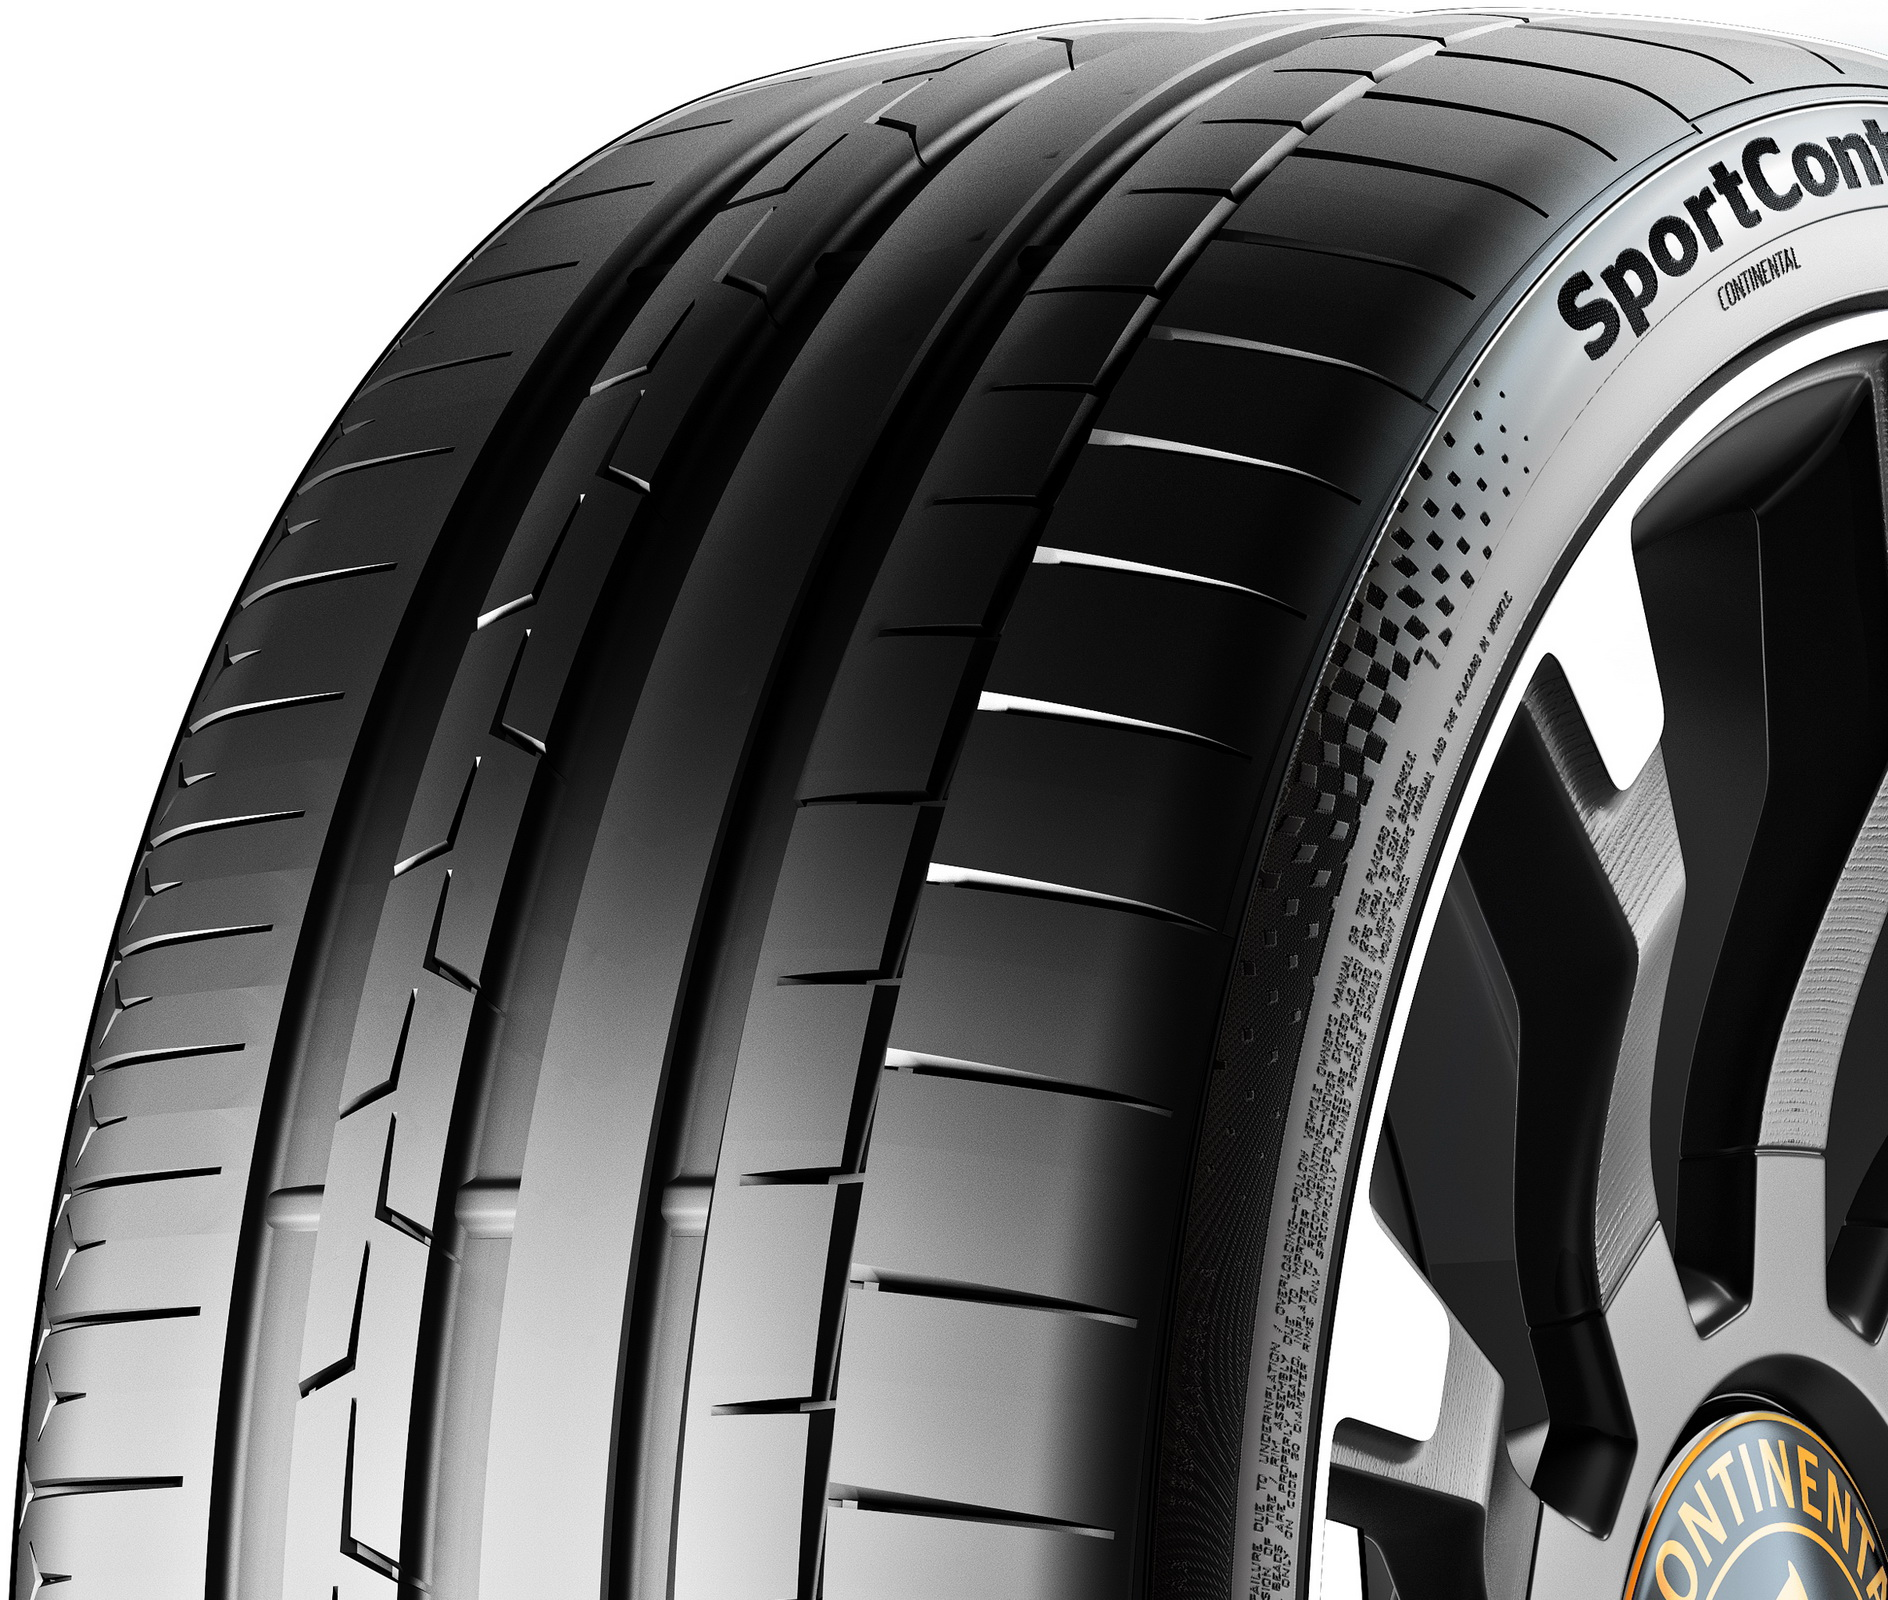 225/35R19 88Y, Continental, SportContact 6